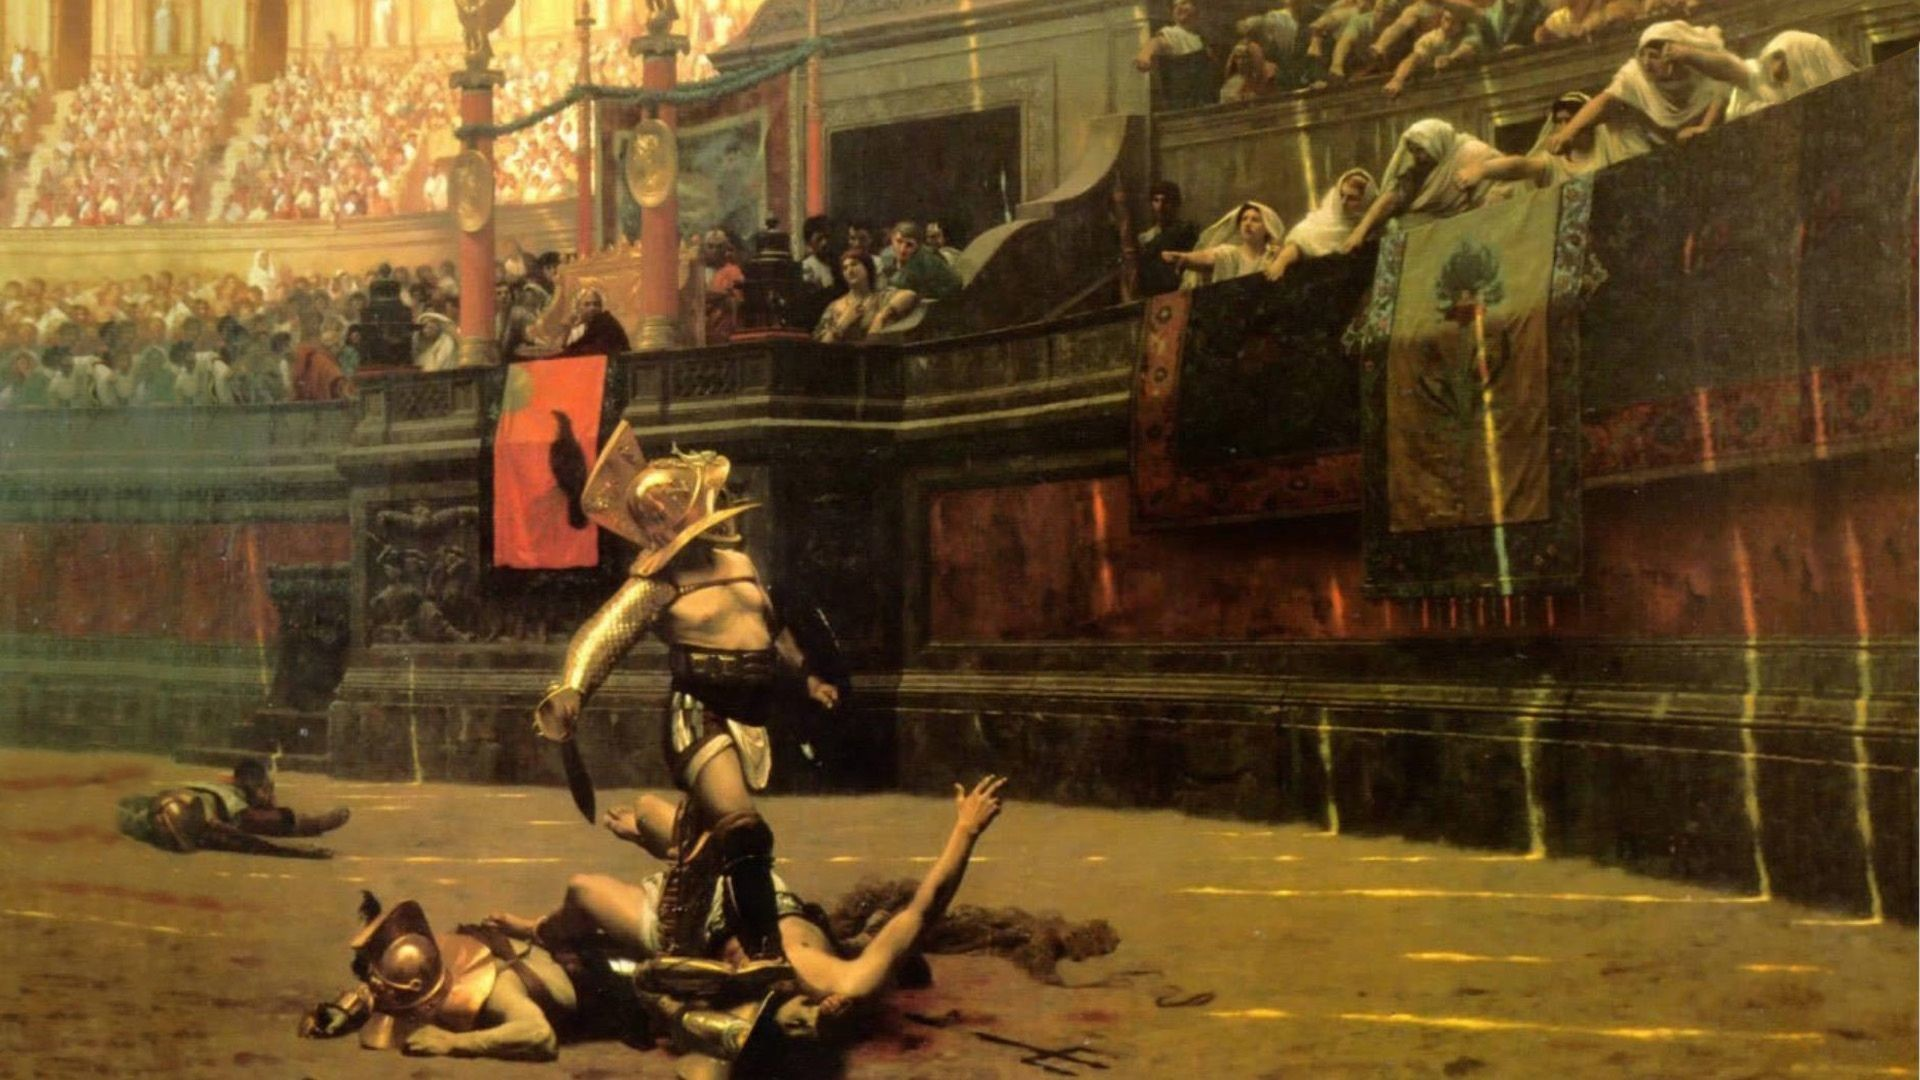 Res: 1920x1080, Artistic Painting Rome Arena Gladiator Artistic Wallpaper